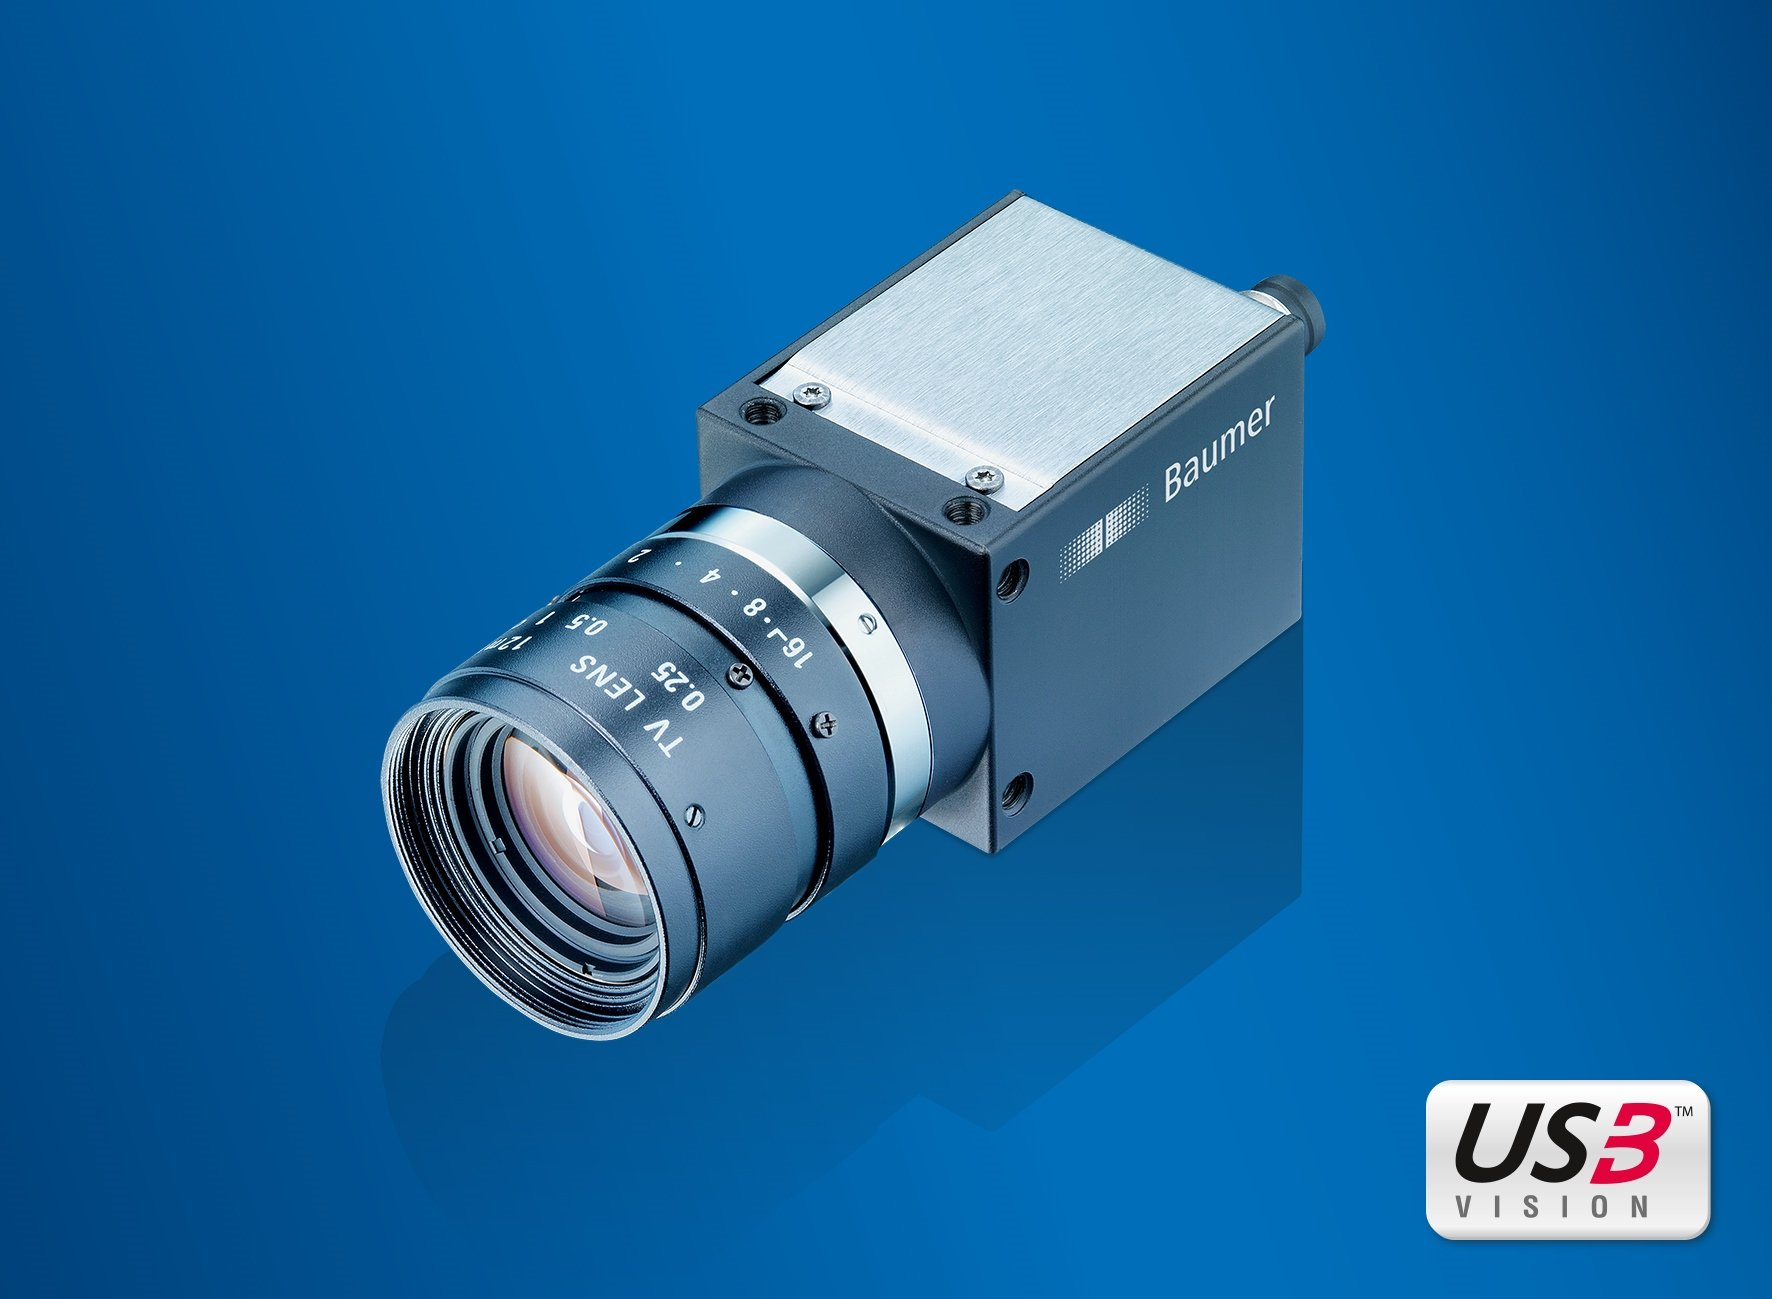 CX series with smallest 12 megapixel global shutter CMOS